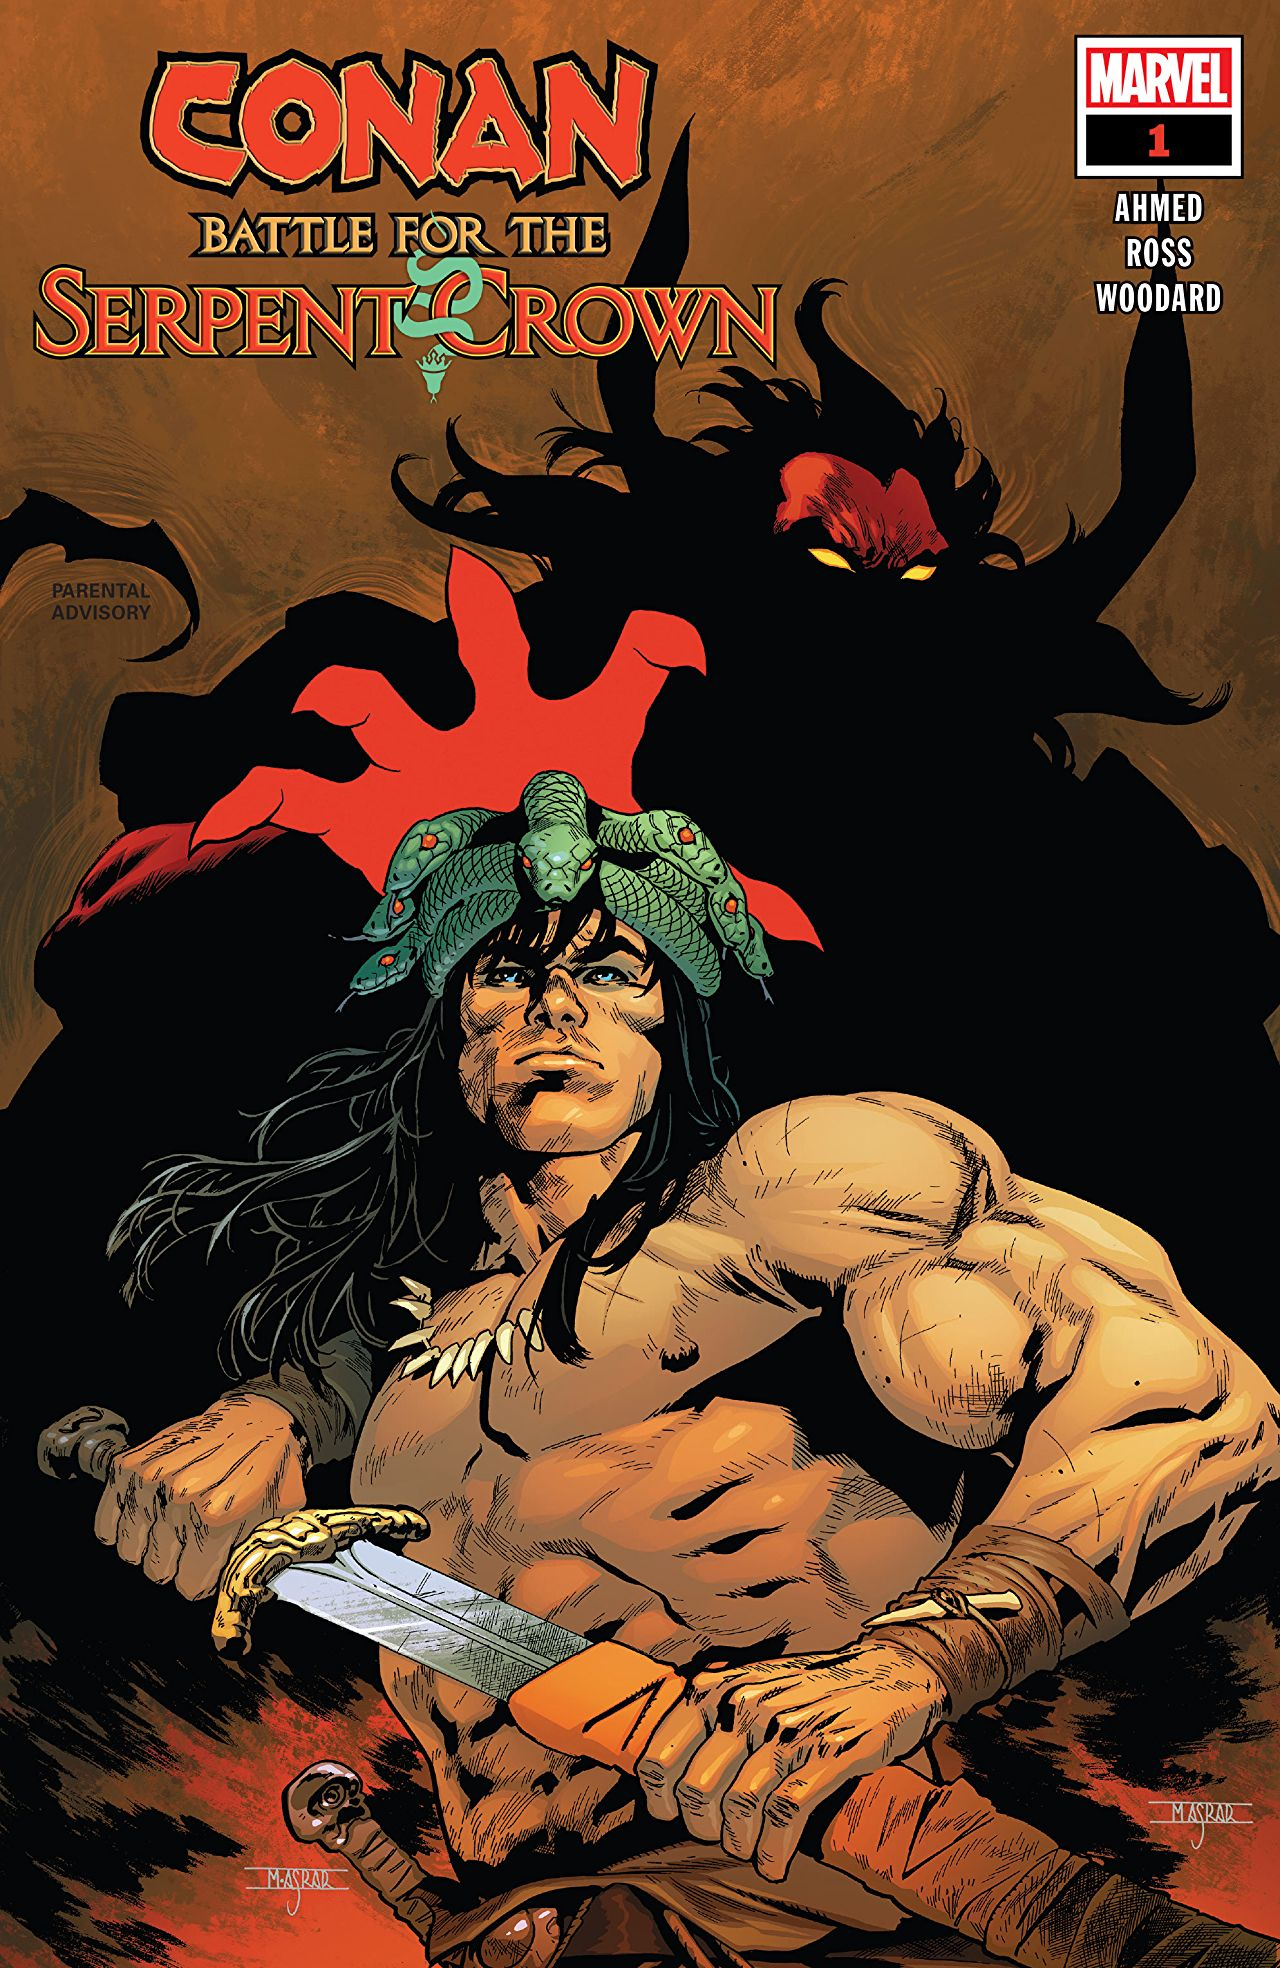 Conan: Battle for the Serpent Crown (2020) #1